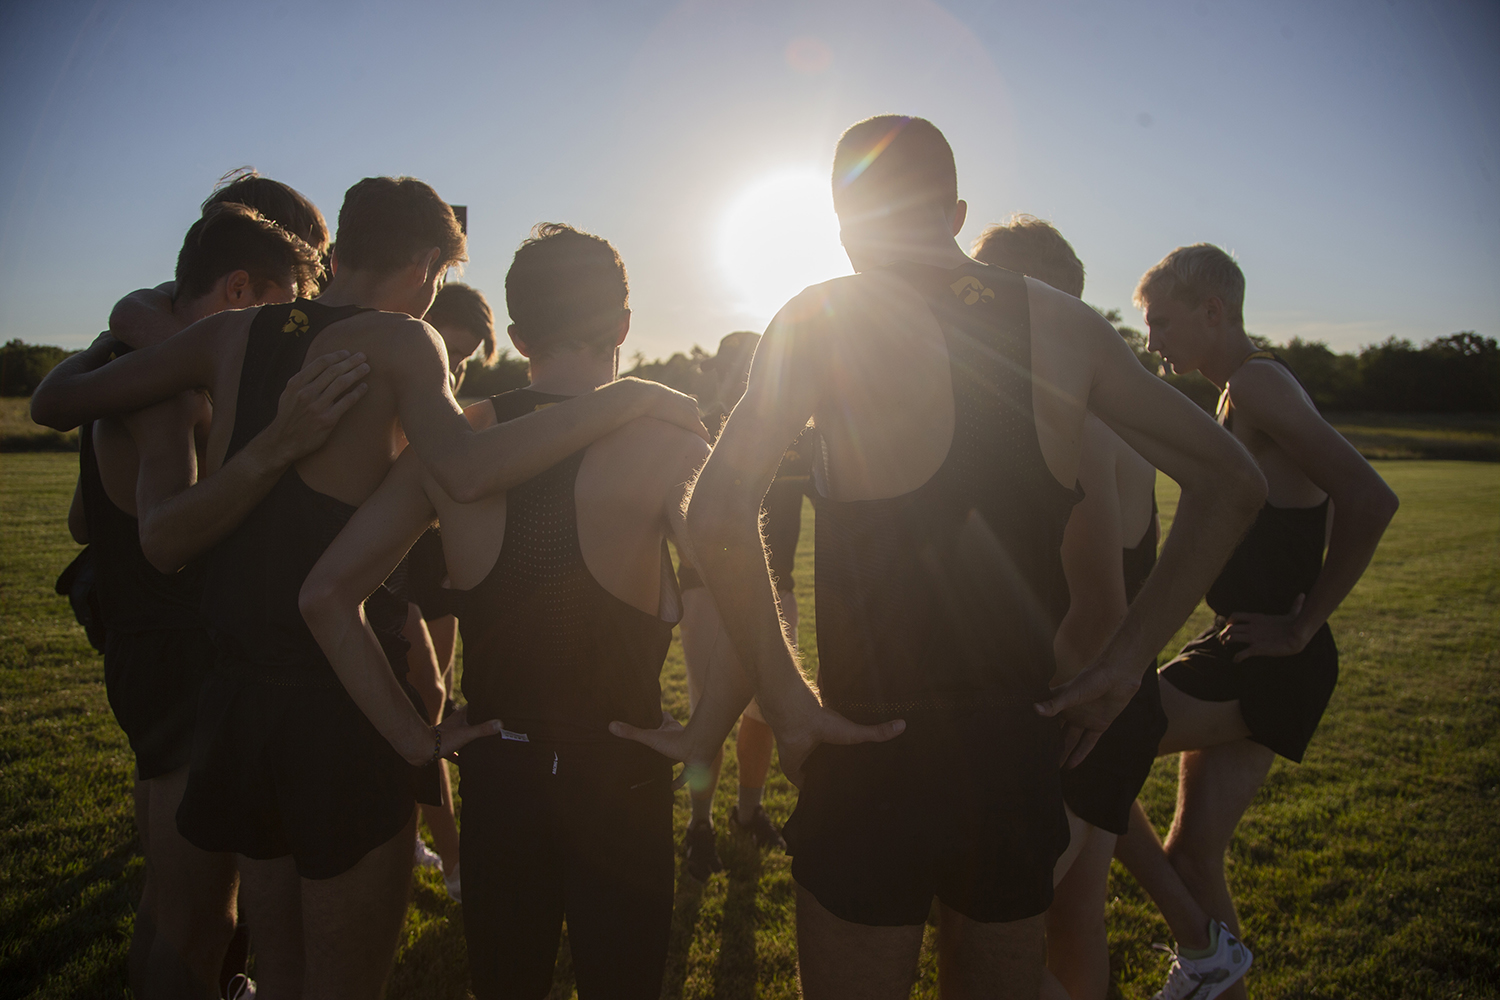 The+Iowa+men%E2%80%99s+team+huddle+up+before+starting+the+6k+during+the+Hawkeye+Invitational+at+Ashton+Cross+Country+Course+on+Friday%2C+September+6%2C+2019.+The+Hawkeyes+defeated+six+other+teams+to+finish+first+overall+for+both+men%E2%80%99s+and+women%E2%80%99s+races.